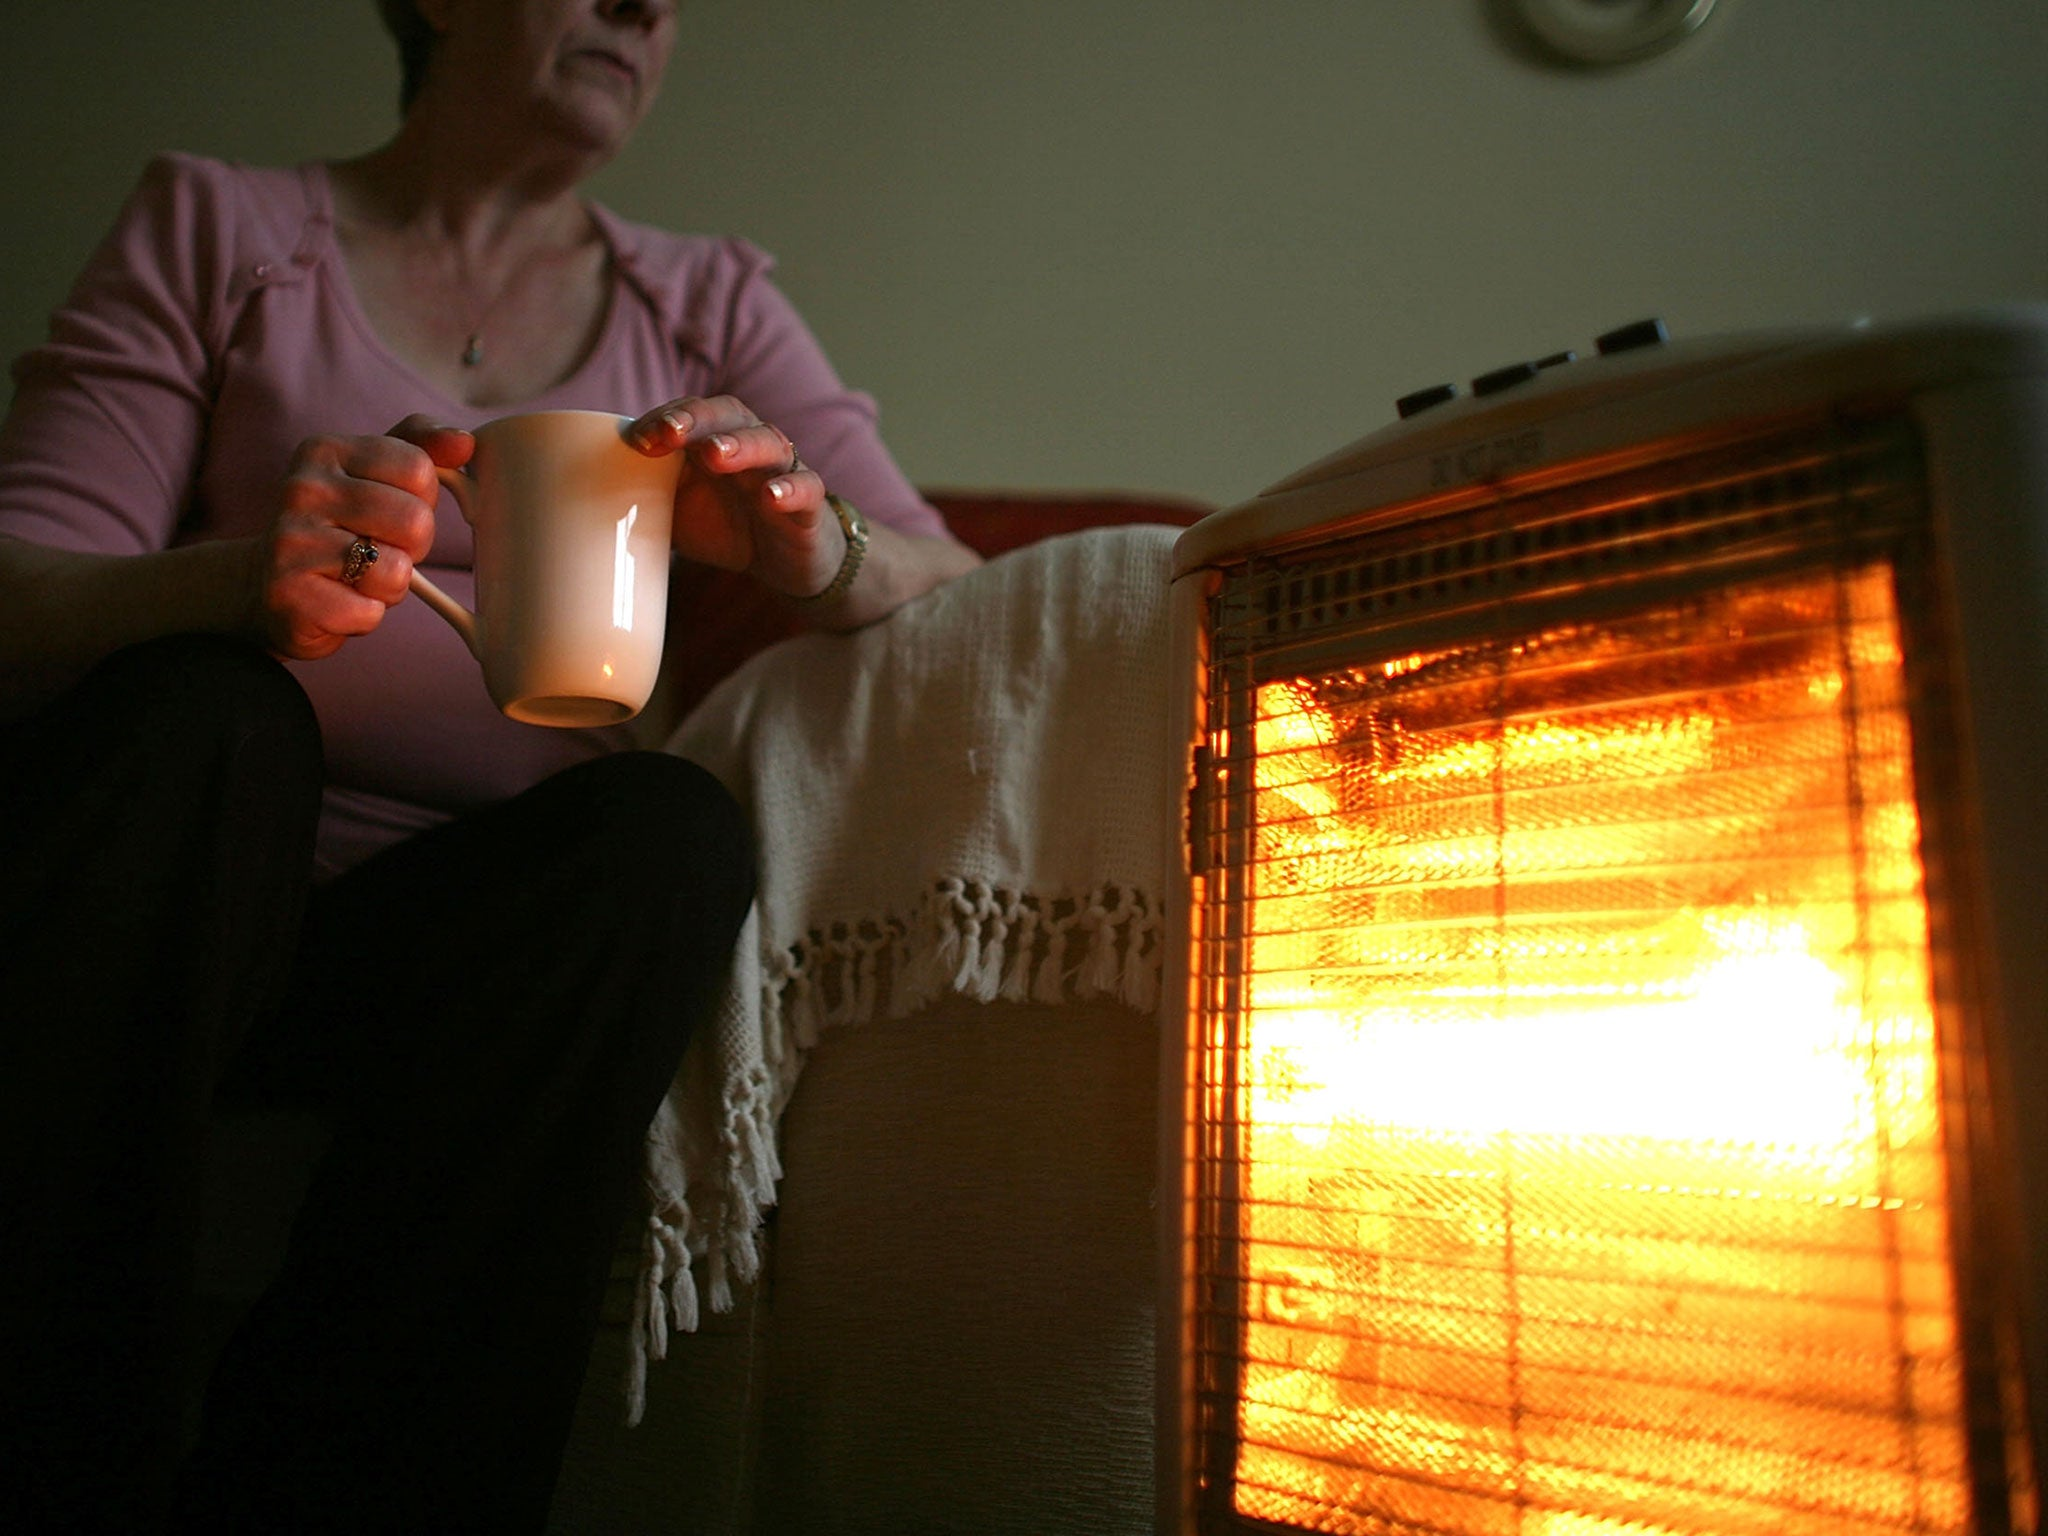 Where to complain about poor heating